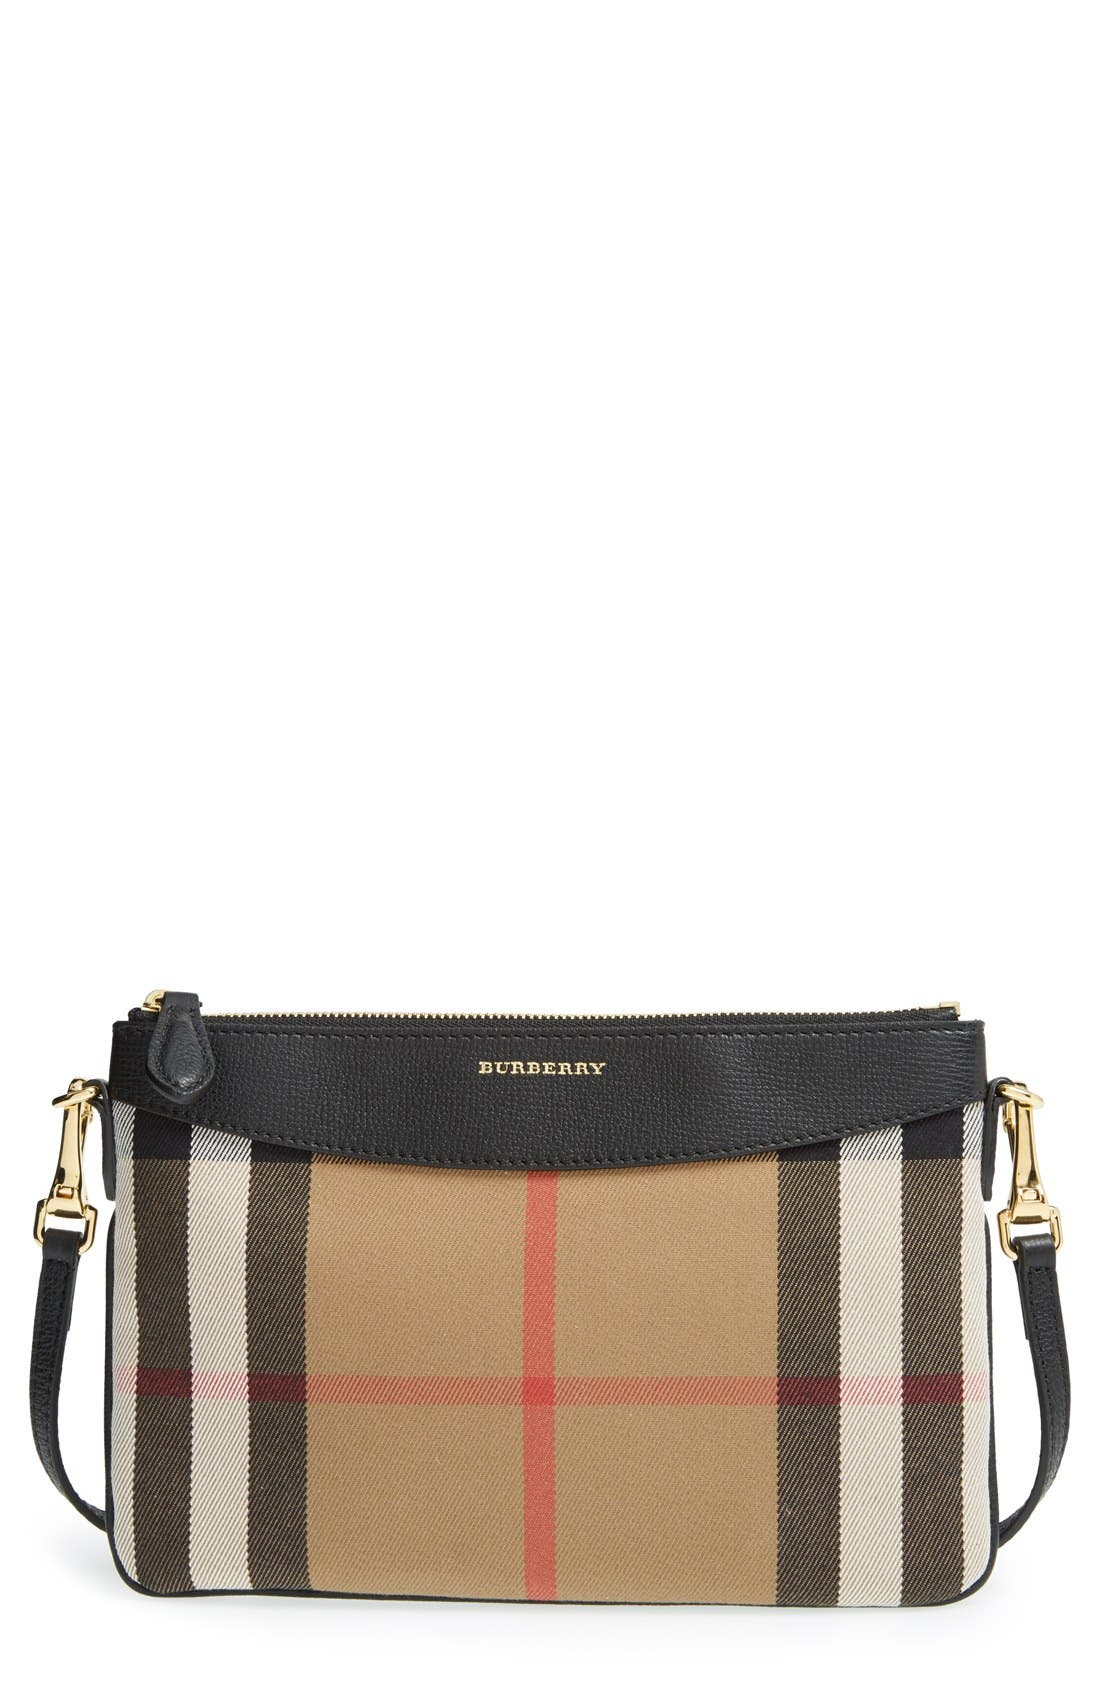 Main Image - Burberry 'Peyton - House Check' Crossbody Bag